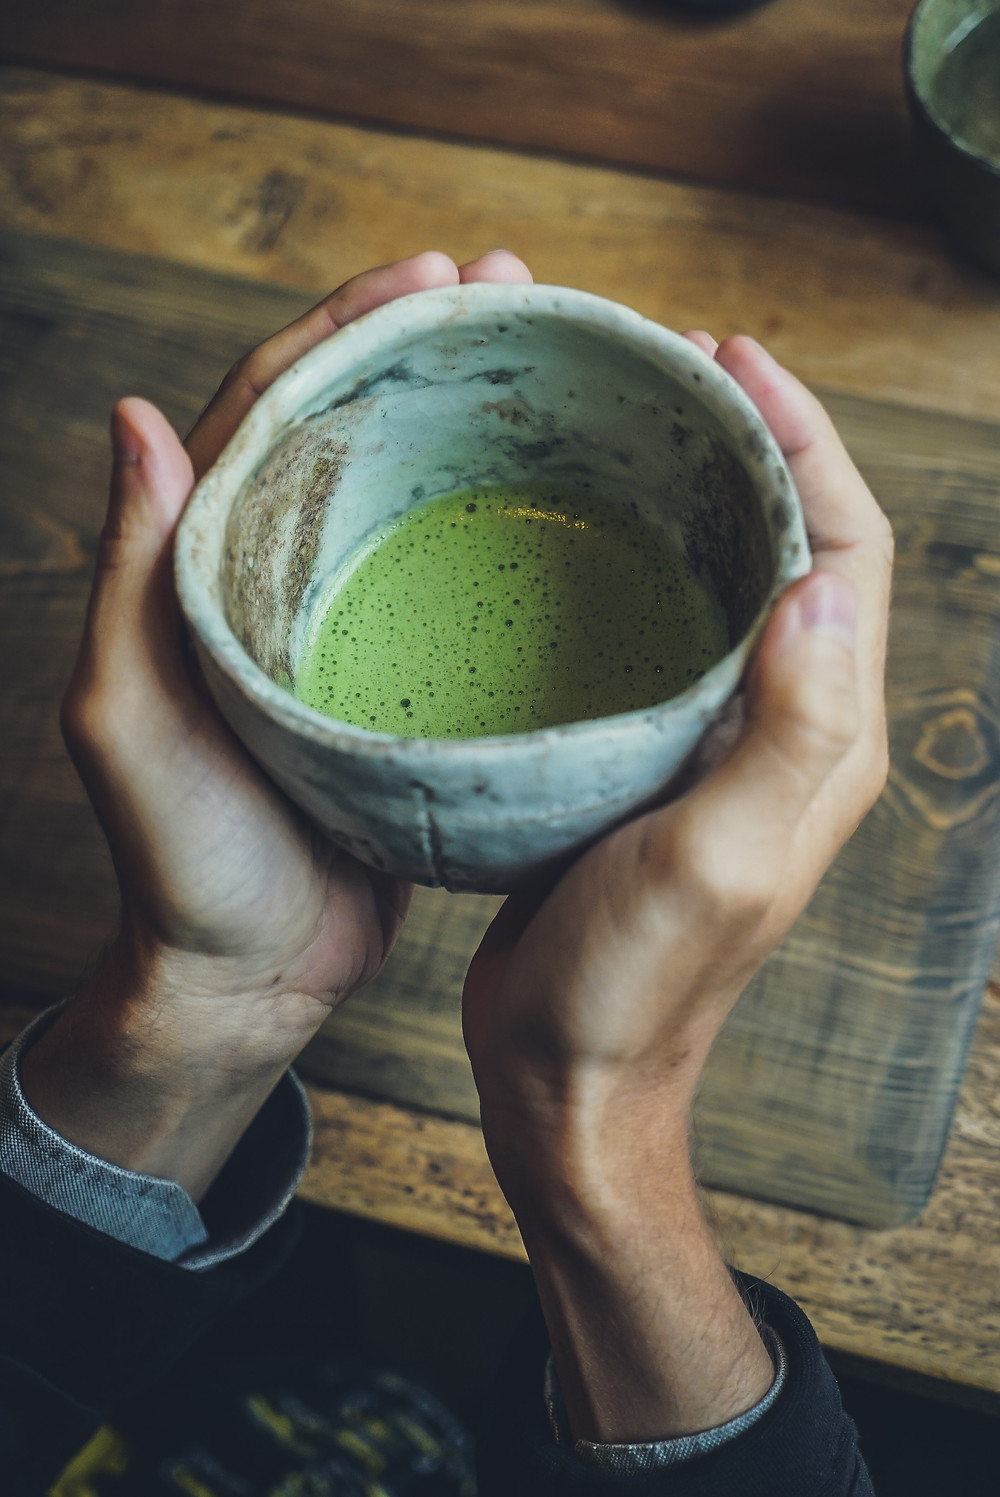 a warm matcha latte in a tea cup being held by two hands